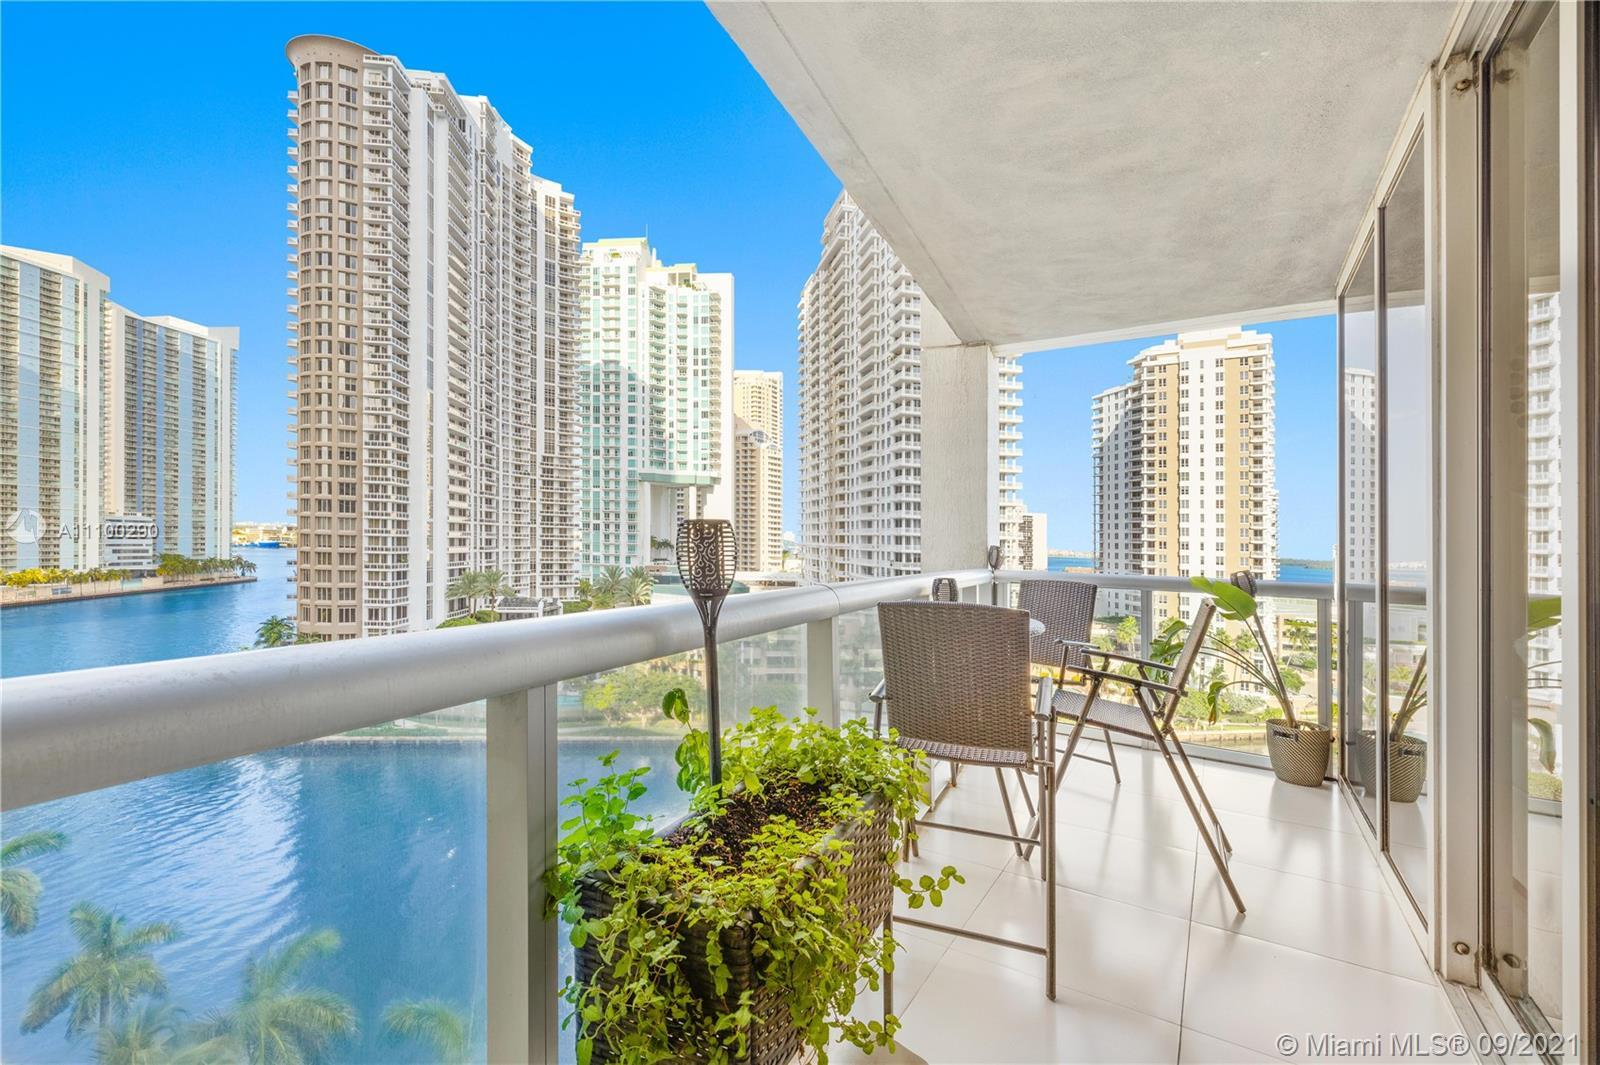 Enjoy the comfortable and elegant design of this 2 bedroom 2/ bath residence. Floor to ceiling high